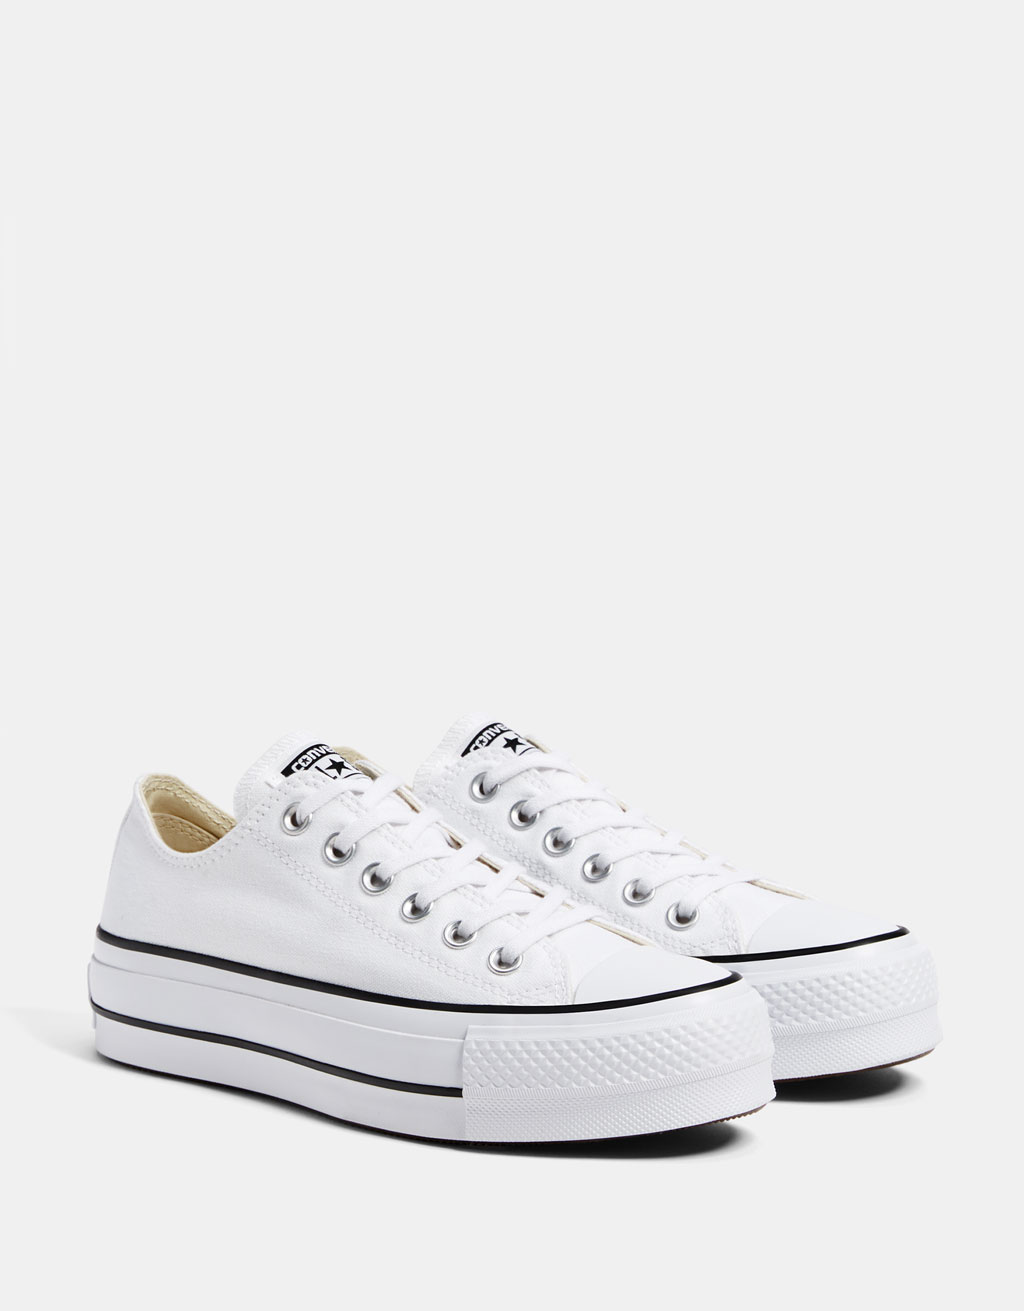 CONVERSE CHUCK TAYLOR ALL STAR platform trainers